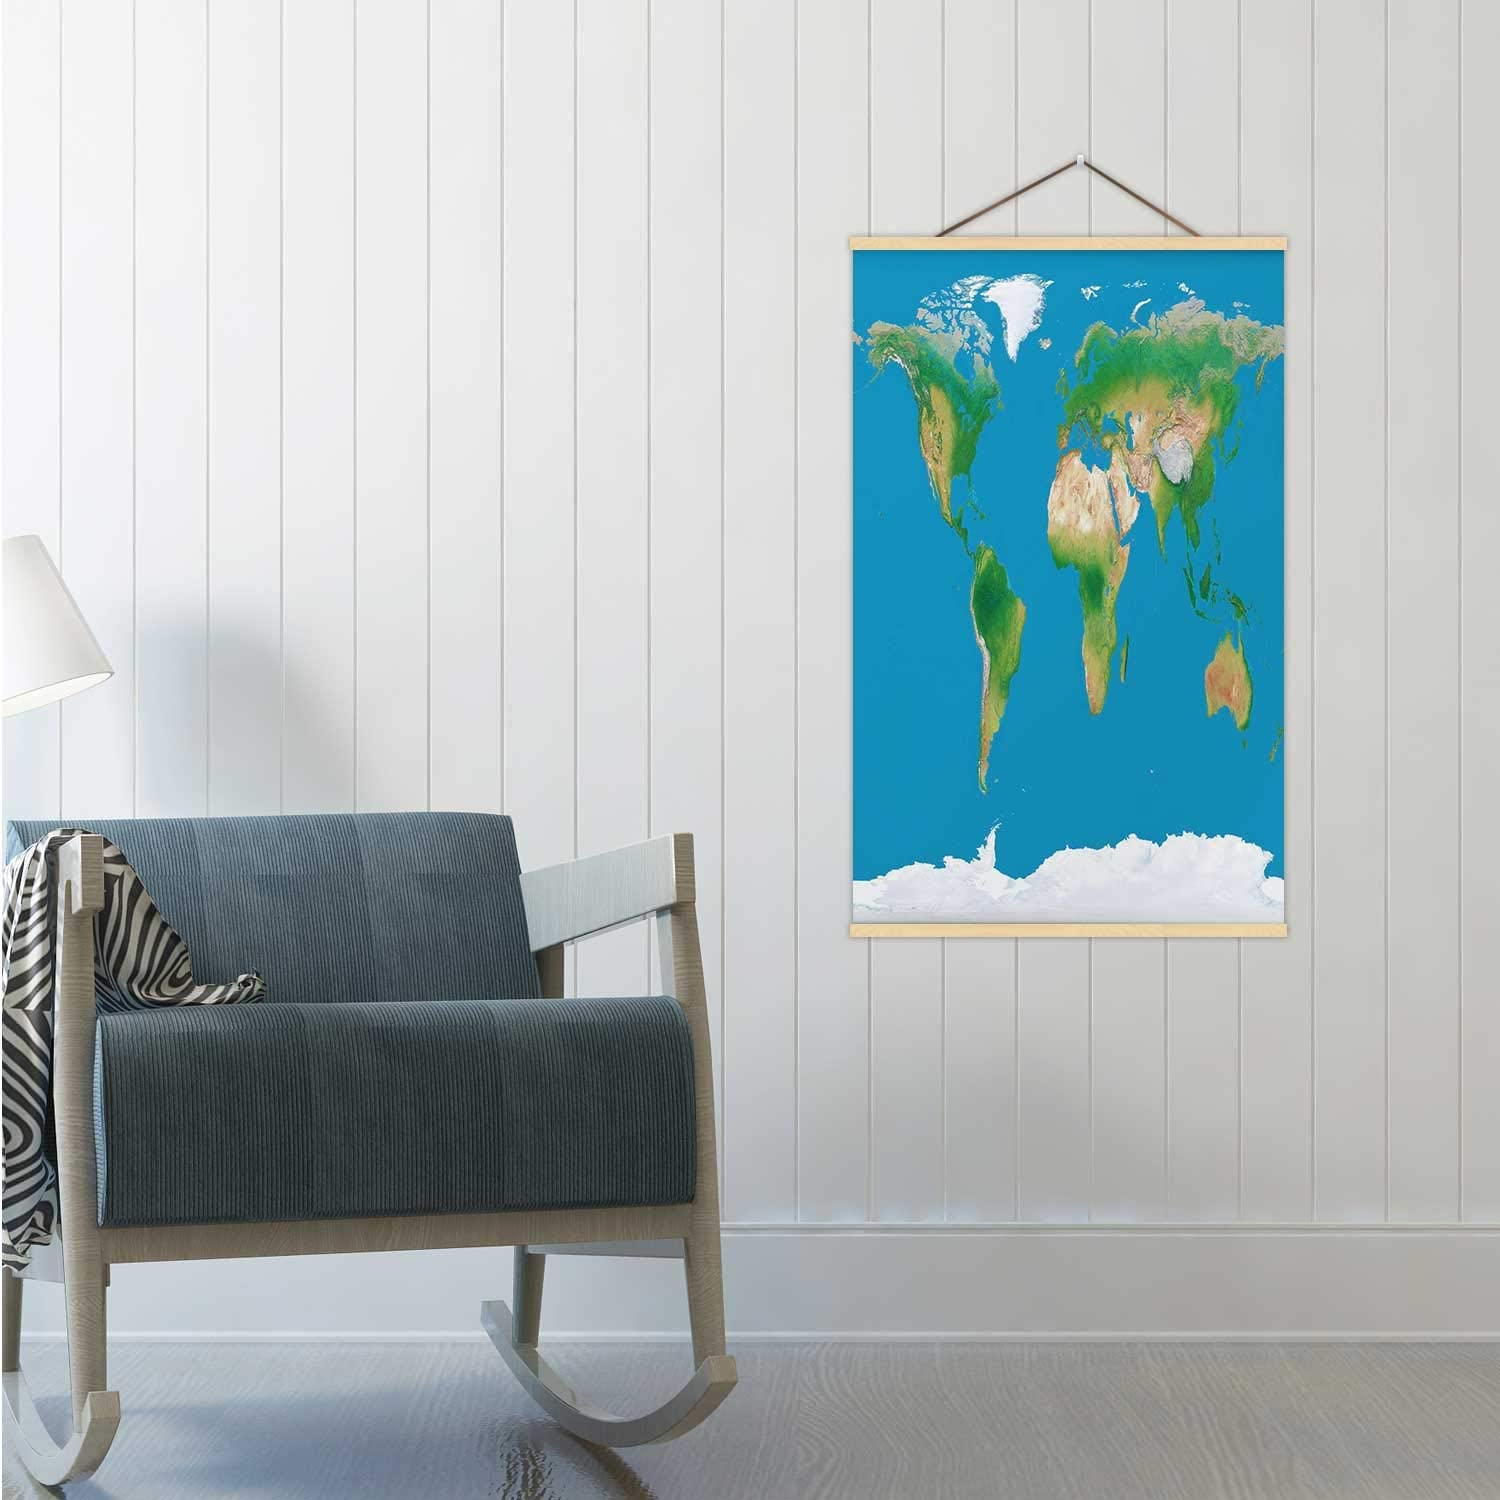 Hitecera World Topographic map Africa,16/19/24 Frams Arctic 16/19/24 Poster Frames 24x35in(WxH)